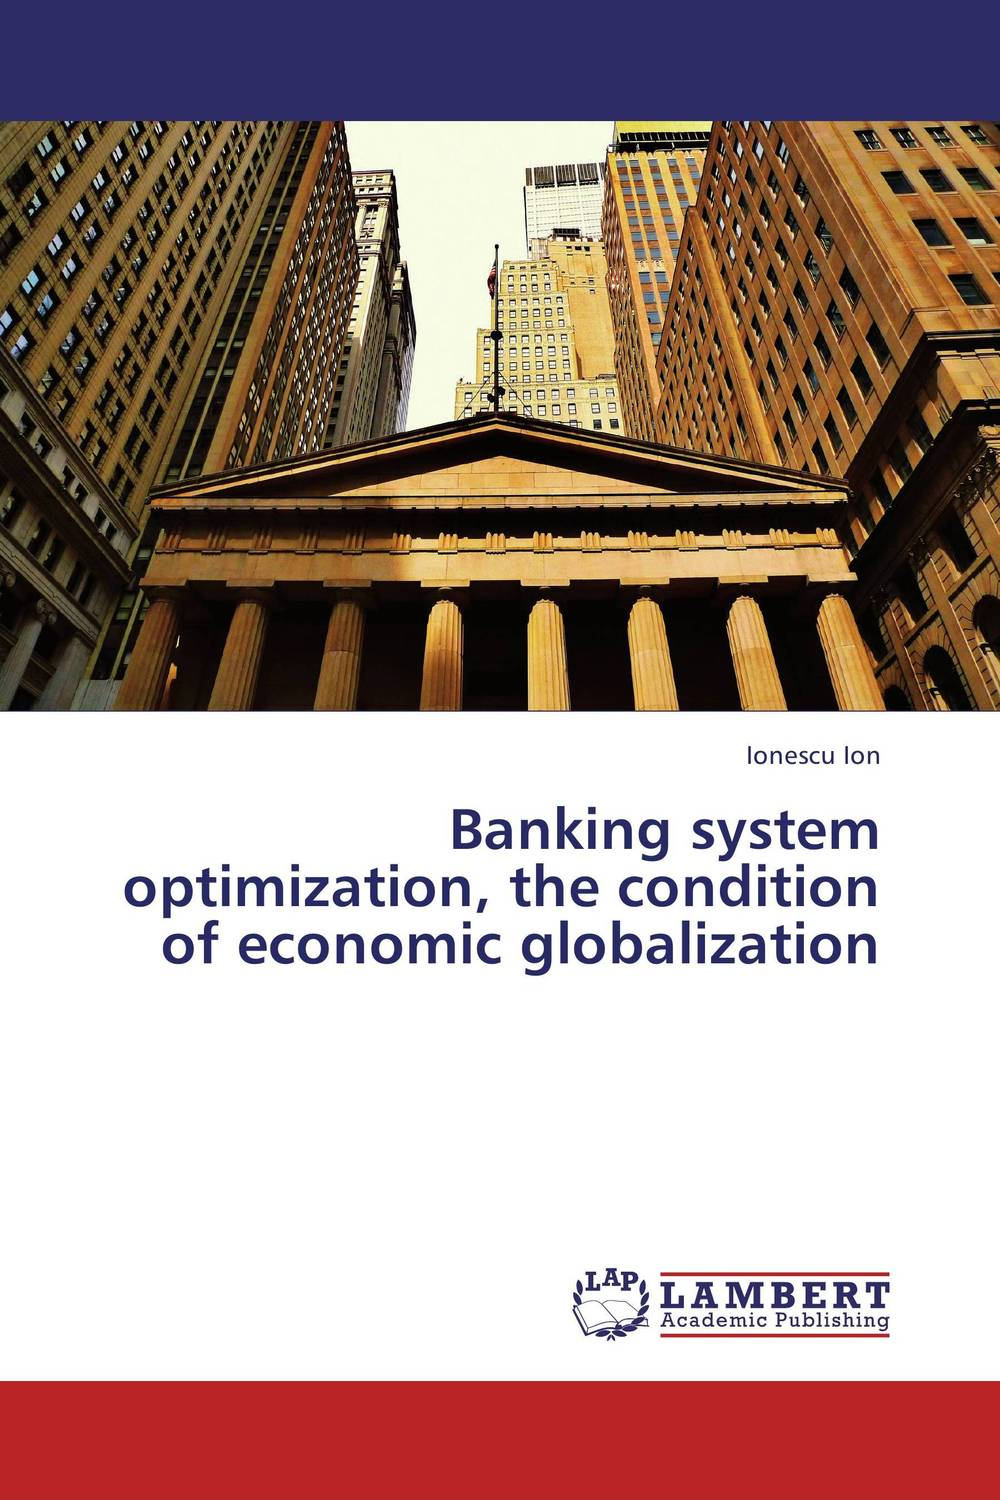 Banking system optimization, the condition of economic globalization